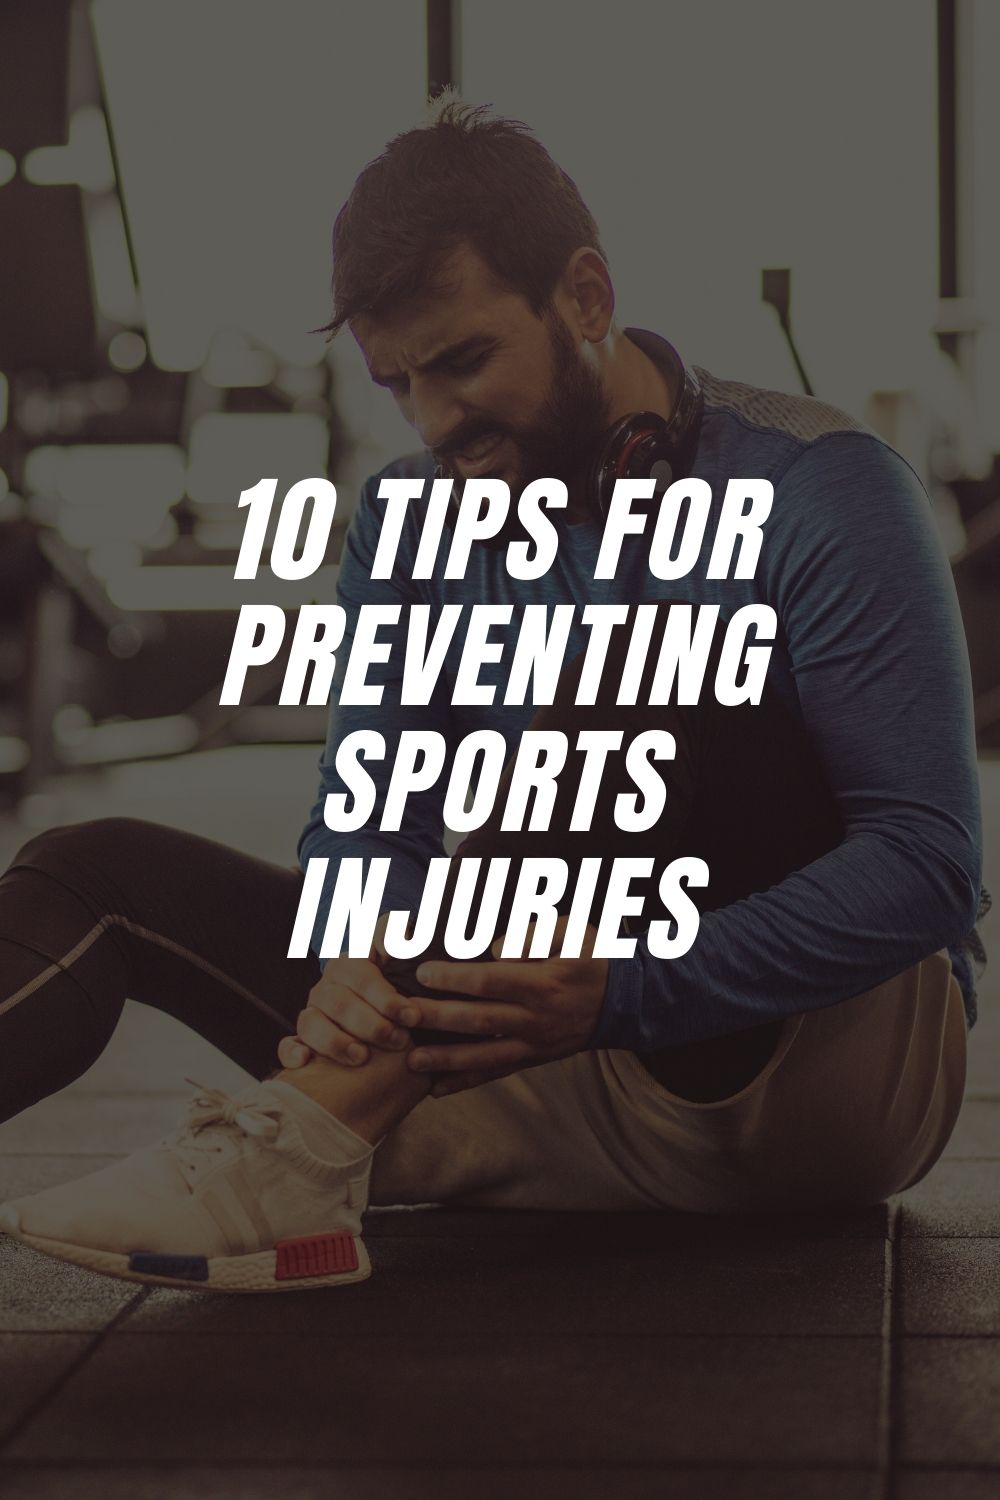 10 Tips for Preventing Sports Injuries